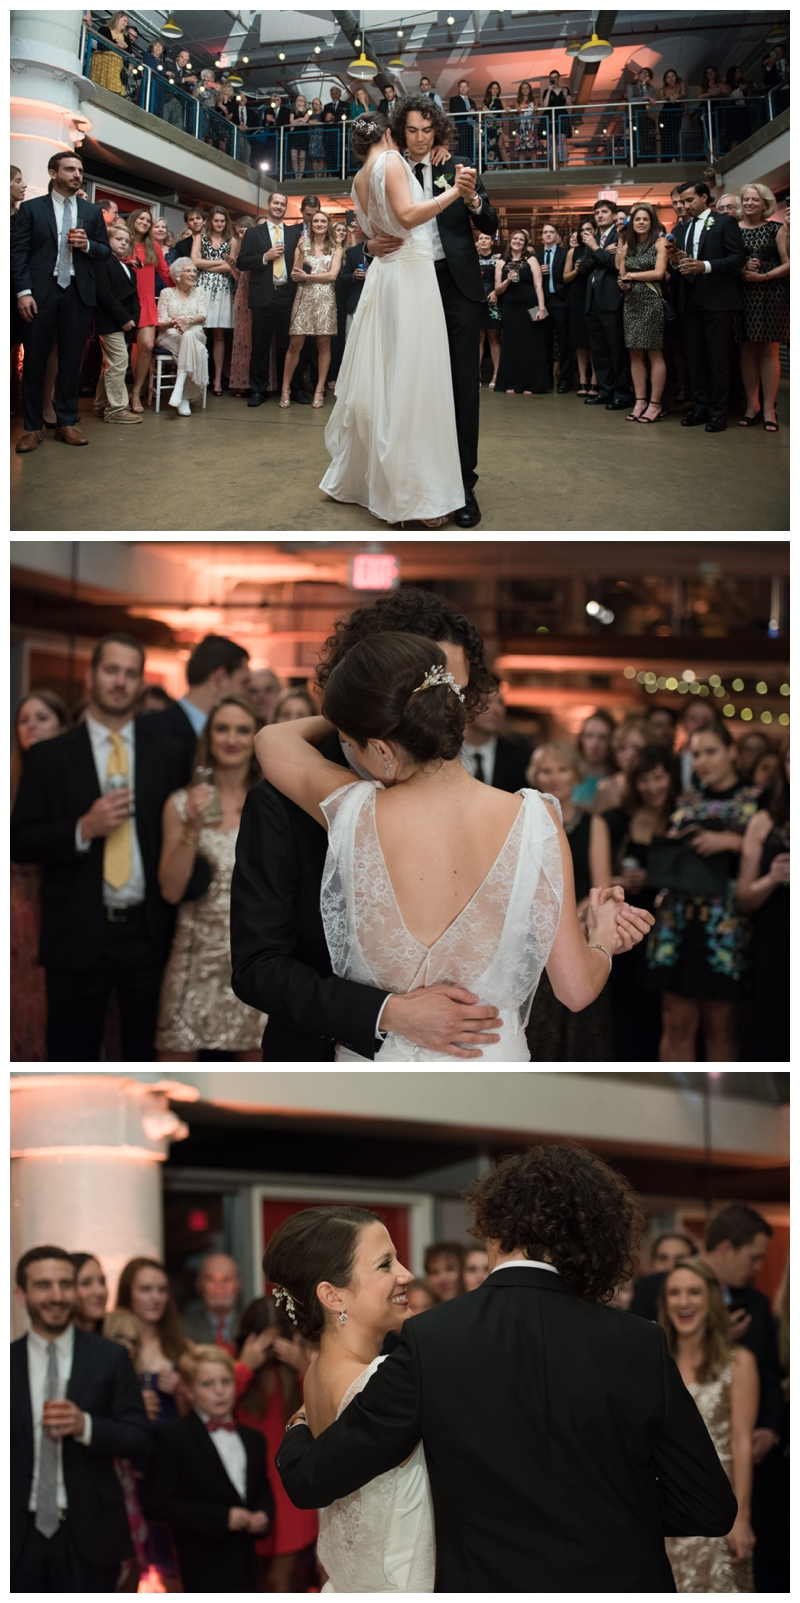 Wedding in Old Town Alexandria Virginia at the Torpedo Factory Art Center by Rachael Foster Photography_0086.jpg